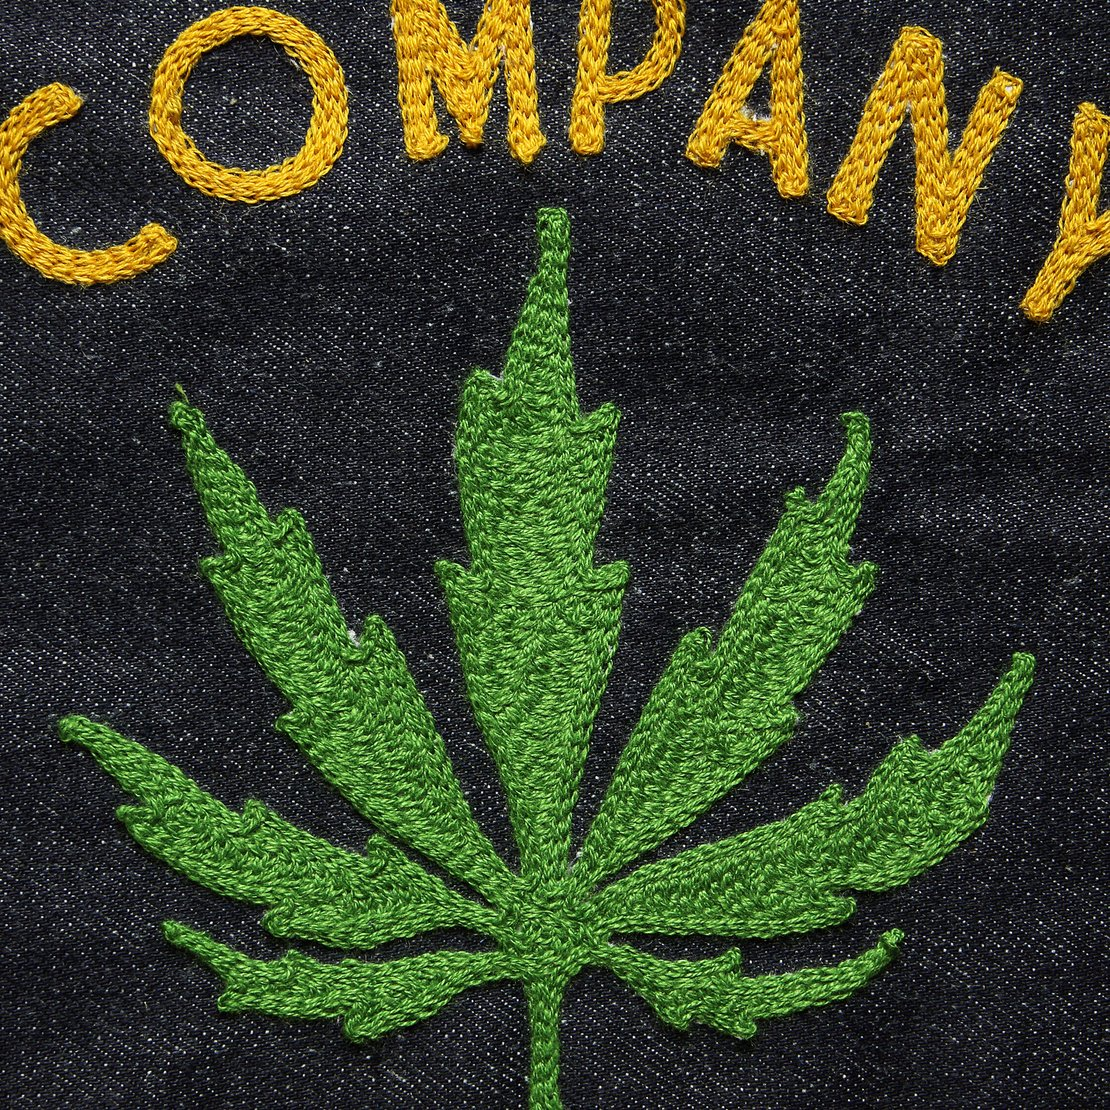 Custom Direct Stitch Embroidery - Weed Leaf